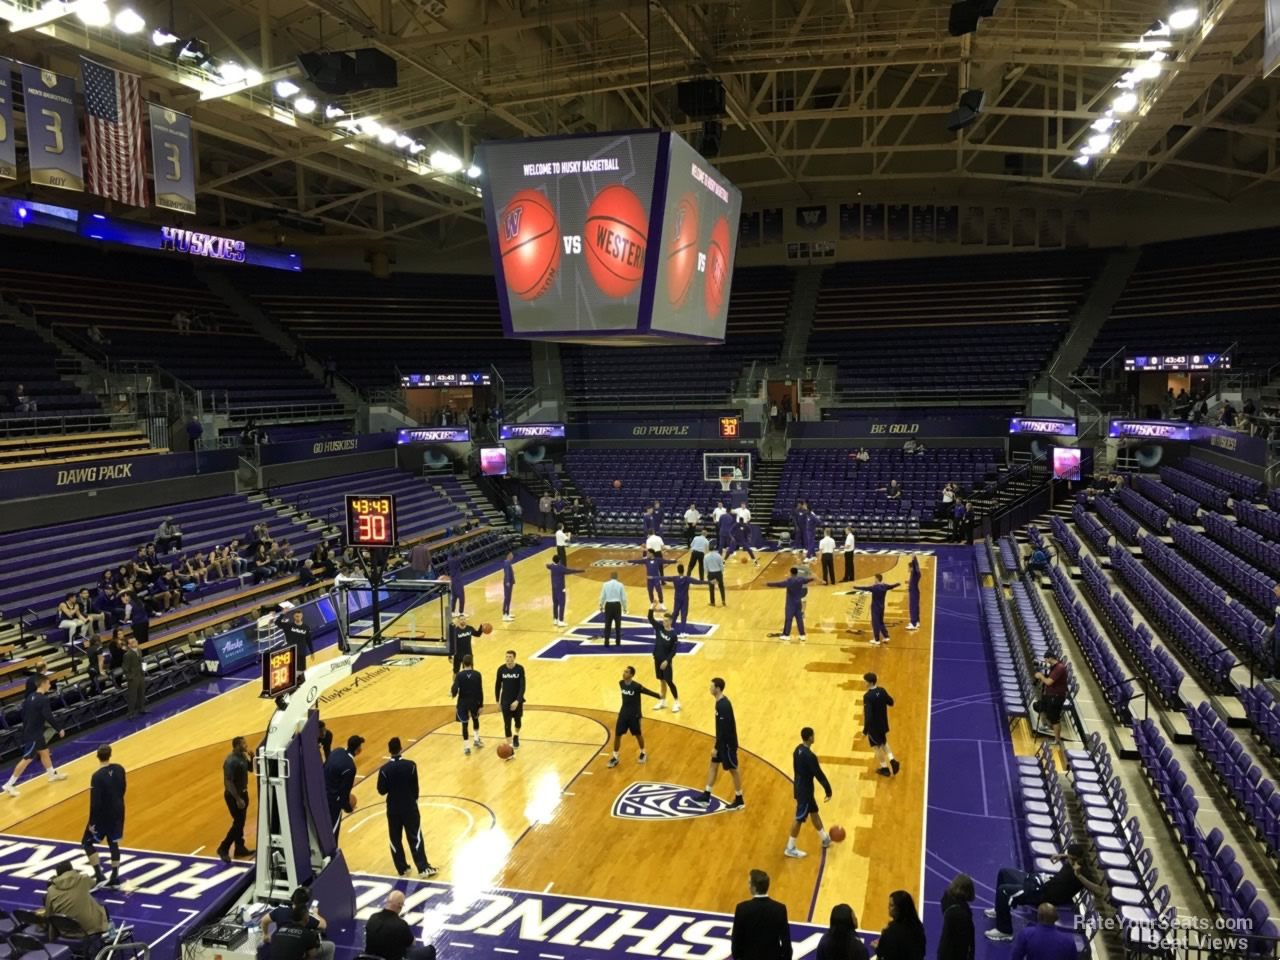 Seat View for Alaska Airlines Arena Section 11, Row 10